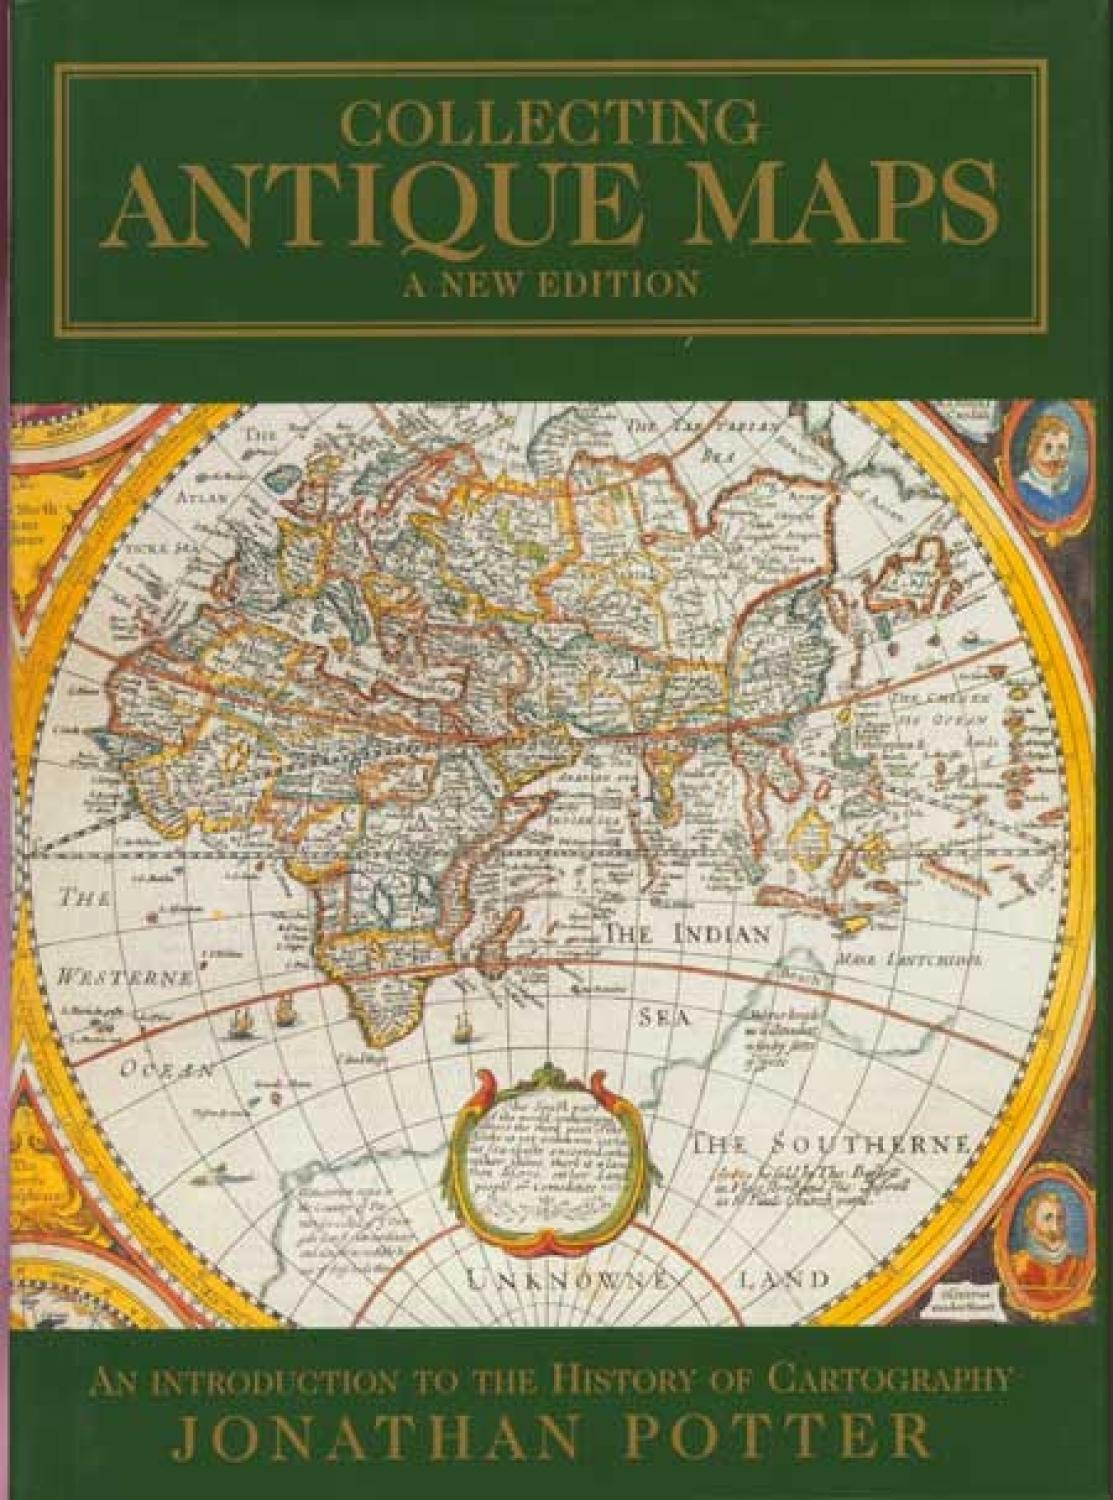 SOLD Collecting Antique Maps: An Introduction to the History of Cartography, A New Edition with Price Guide.